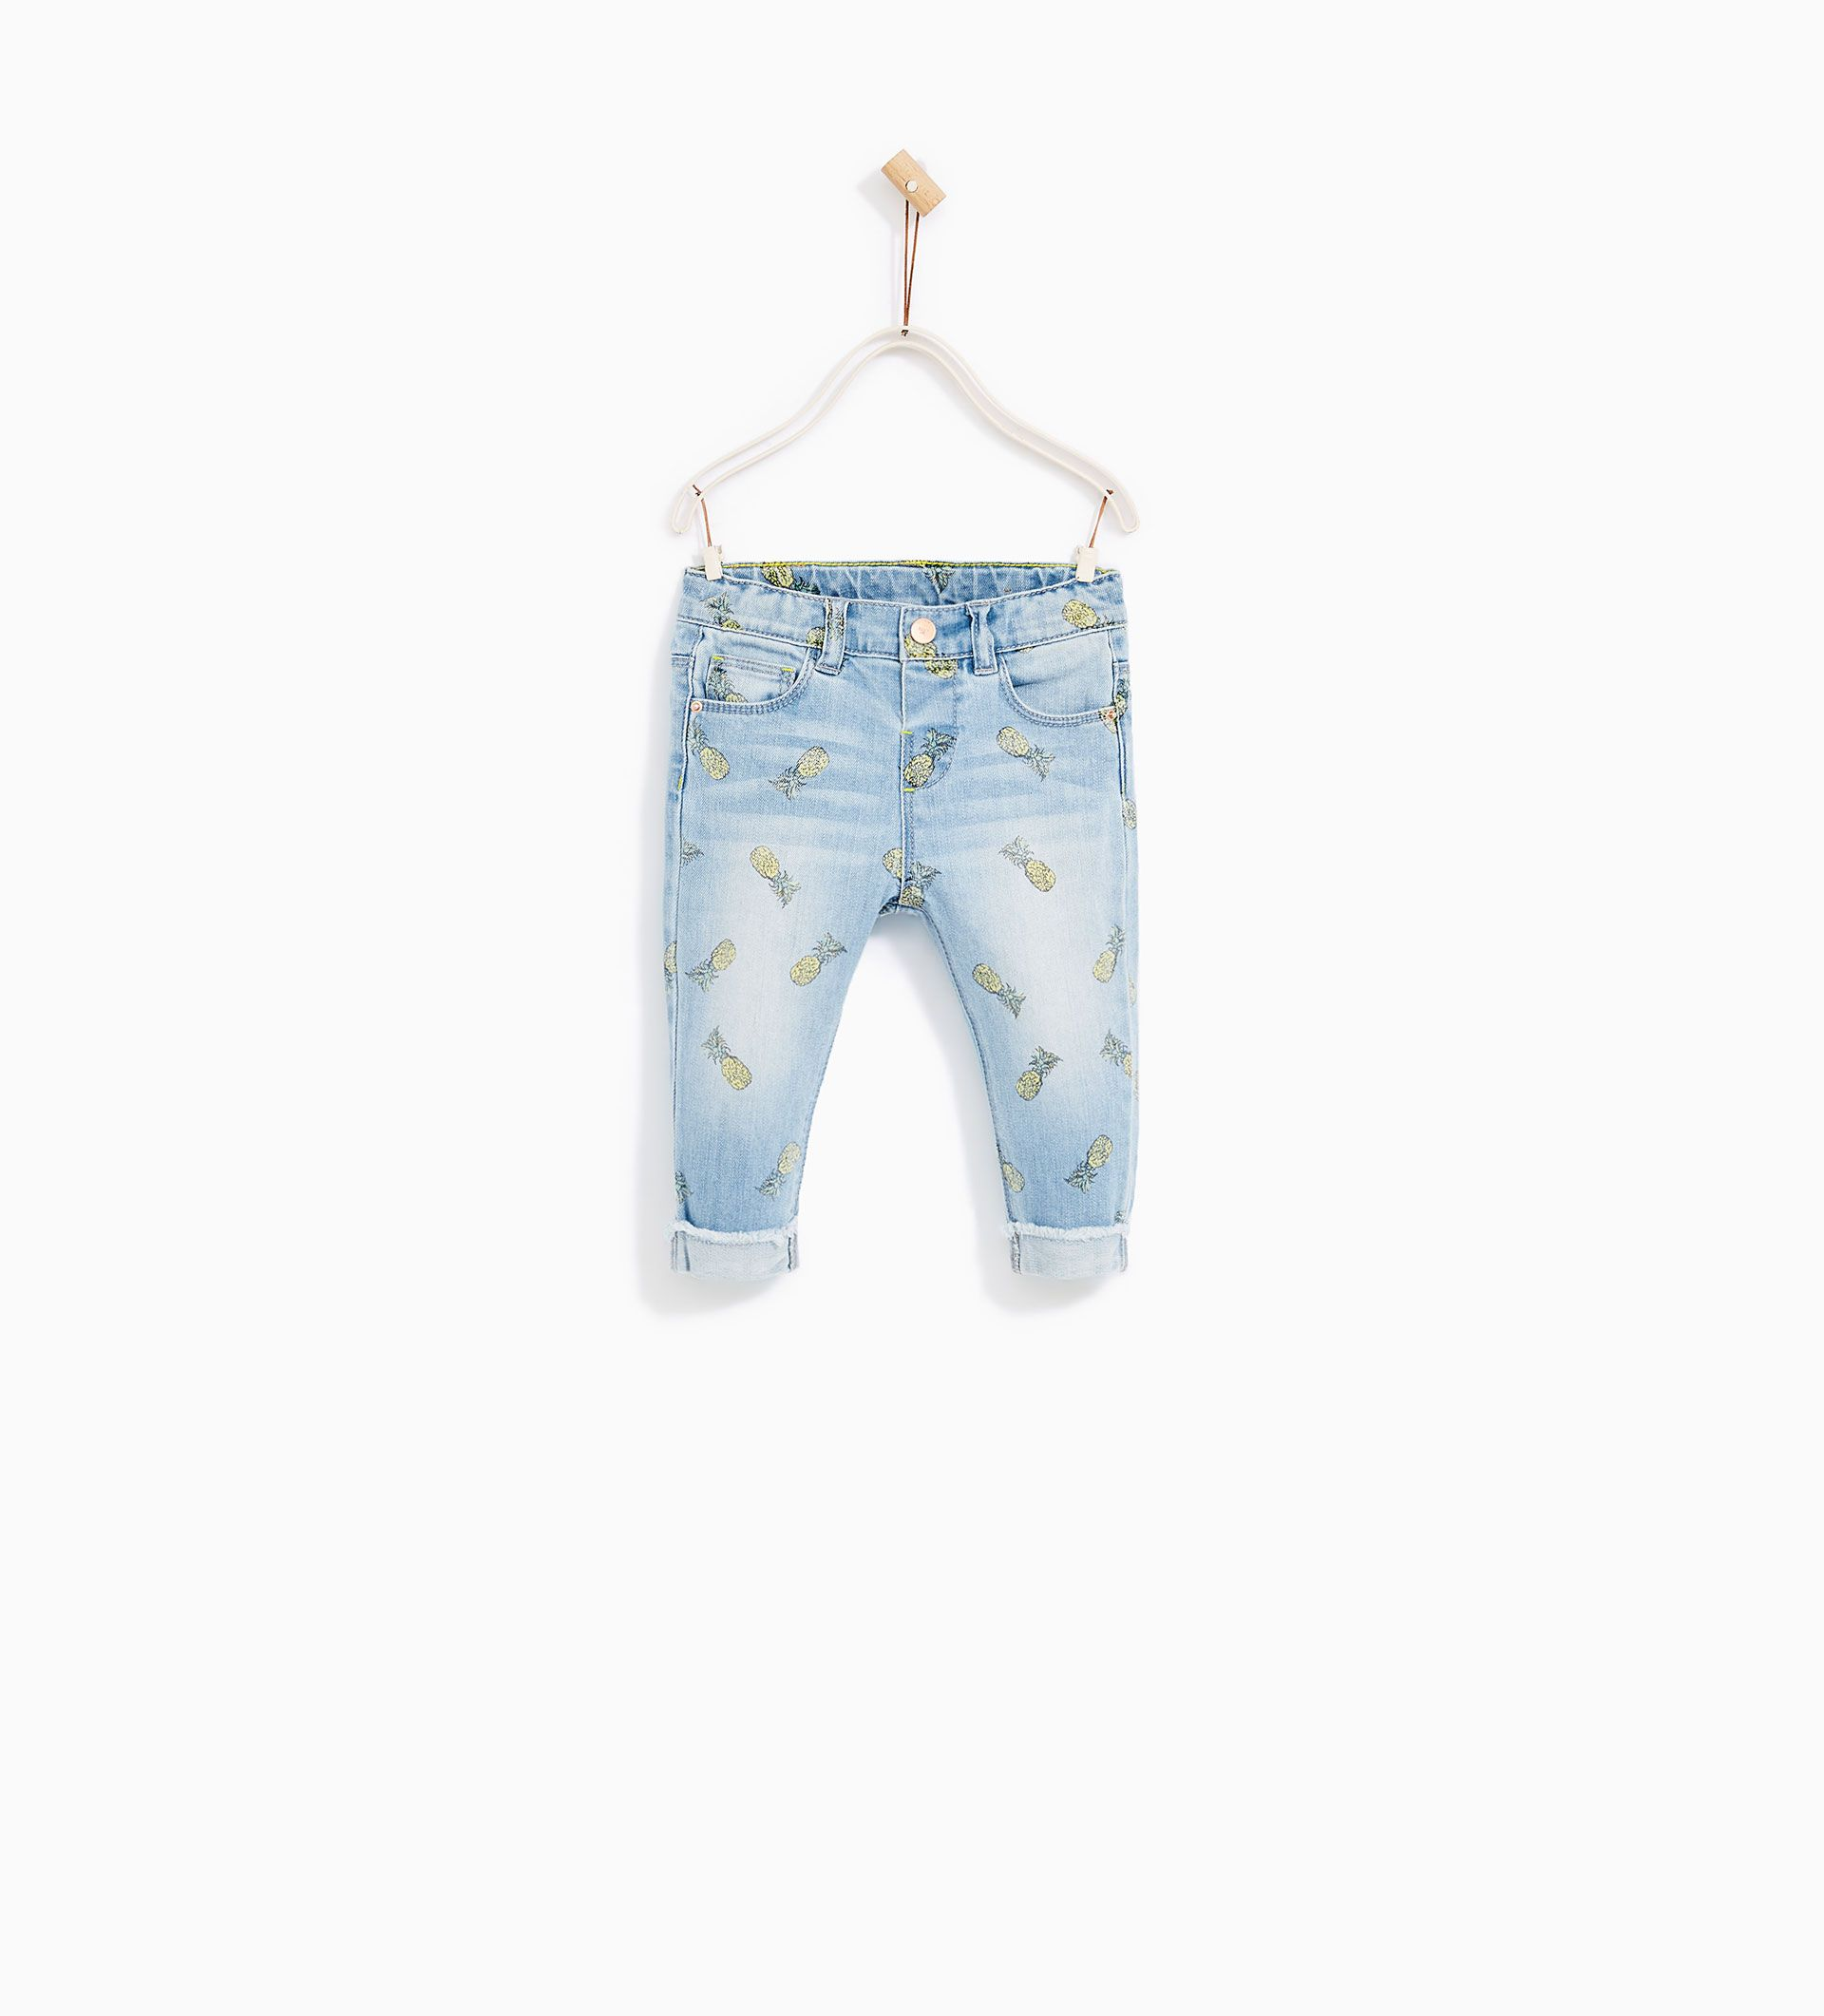 f7236037 Image 1 of PINEAPPLE PRINT JEANS from Zara. Baby girl clothing ...